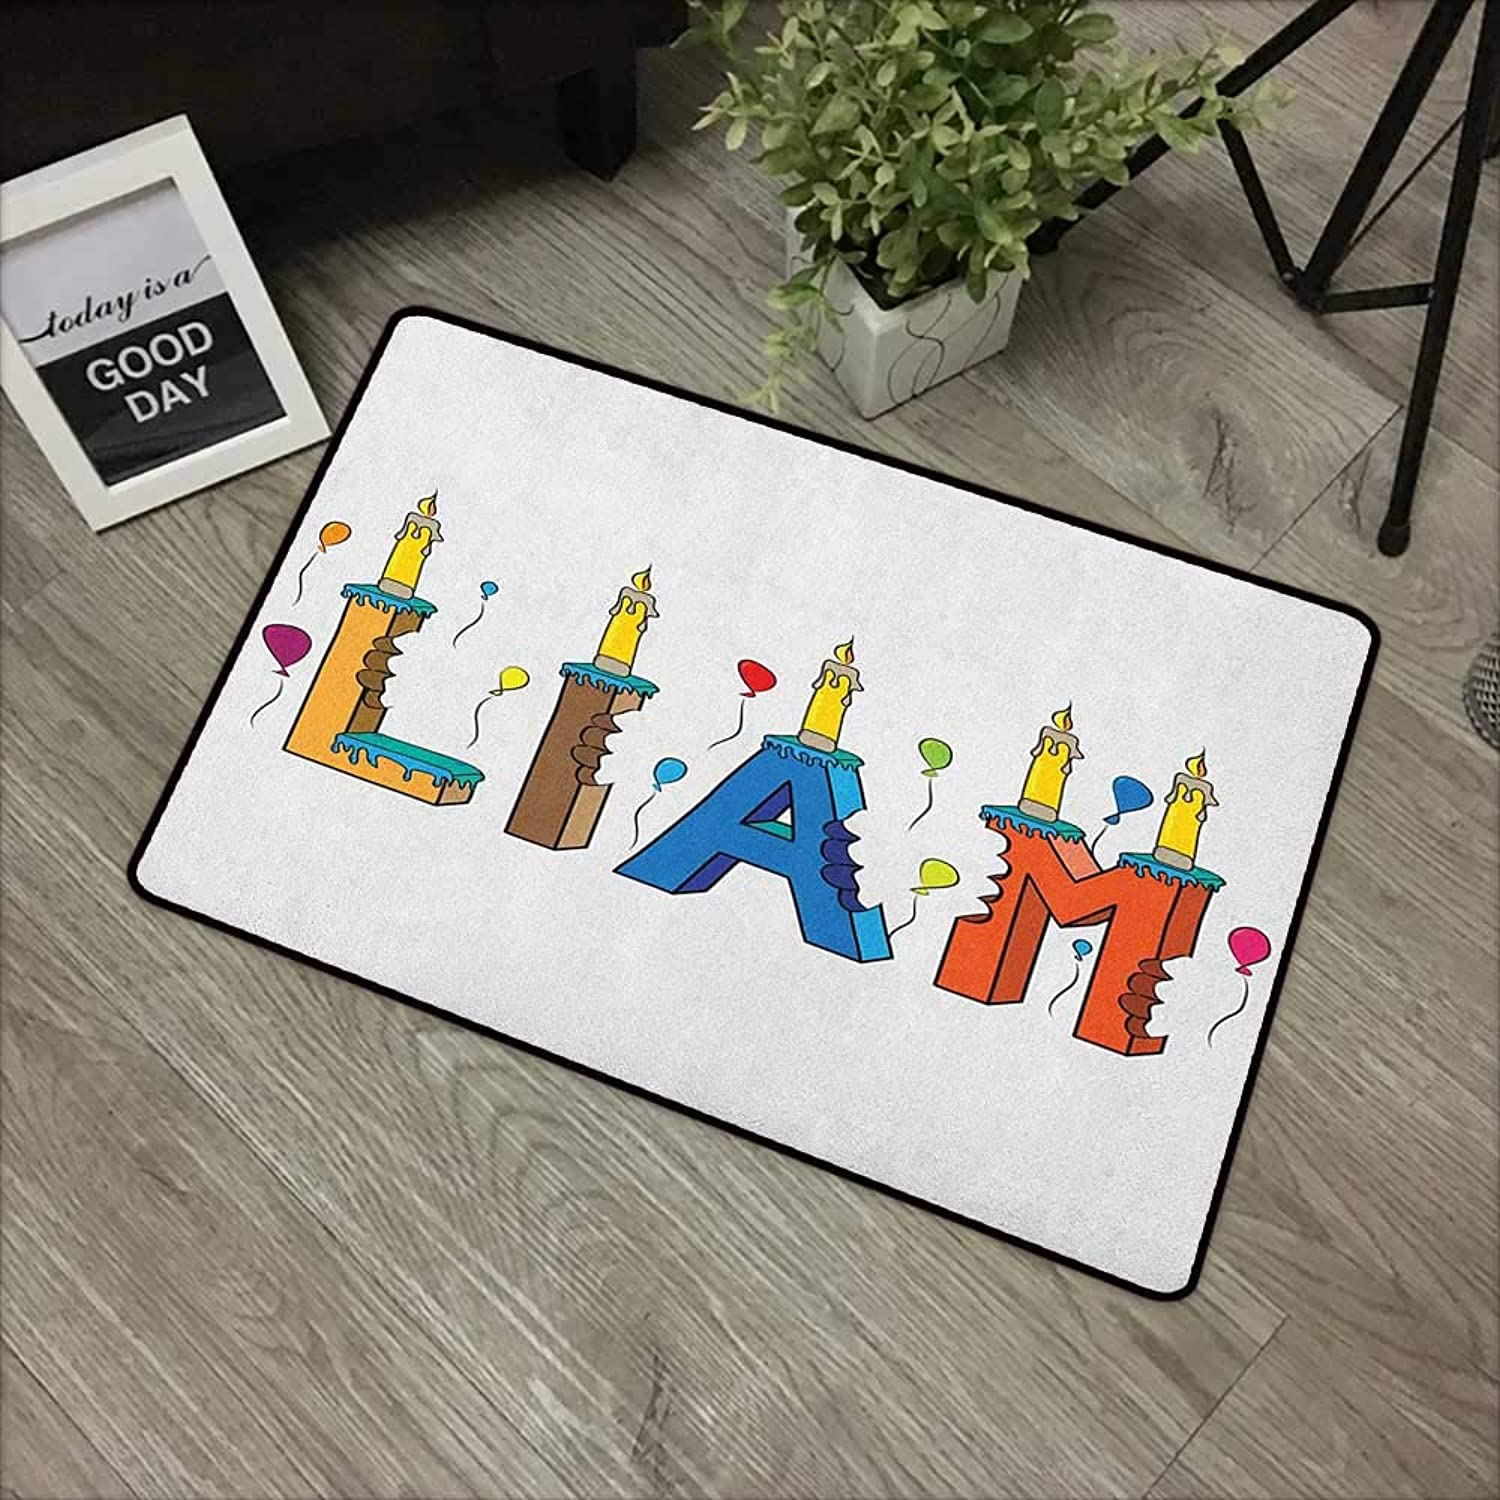 Bathroom mat W35 x L59 INCH Liam,English First Name in a colorful Letter Style Cake Design with Bite Marks and Candles, Multicolor with Non-Slip Backing Door Mat Carpet